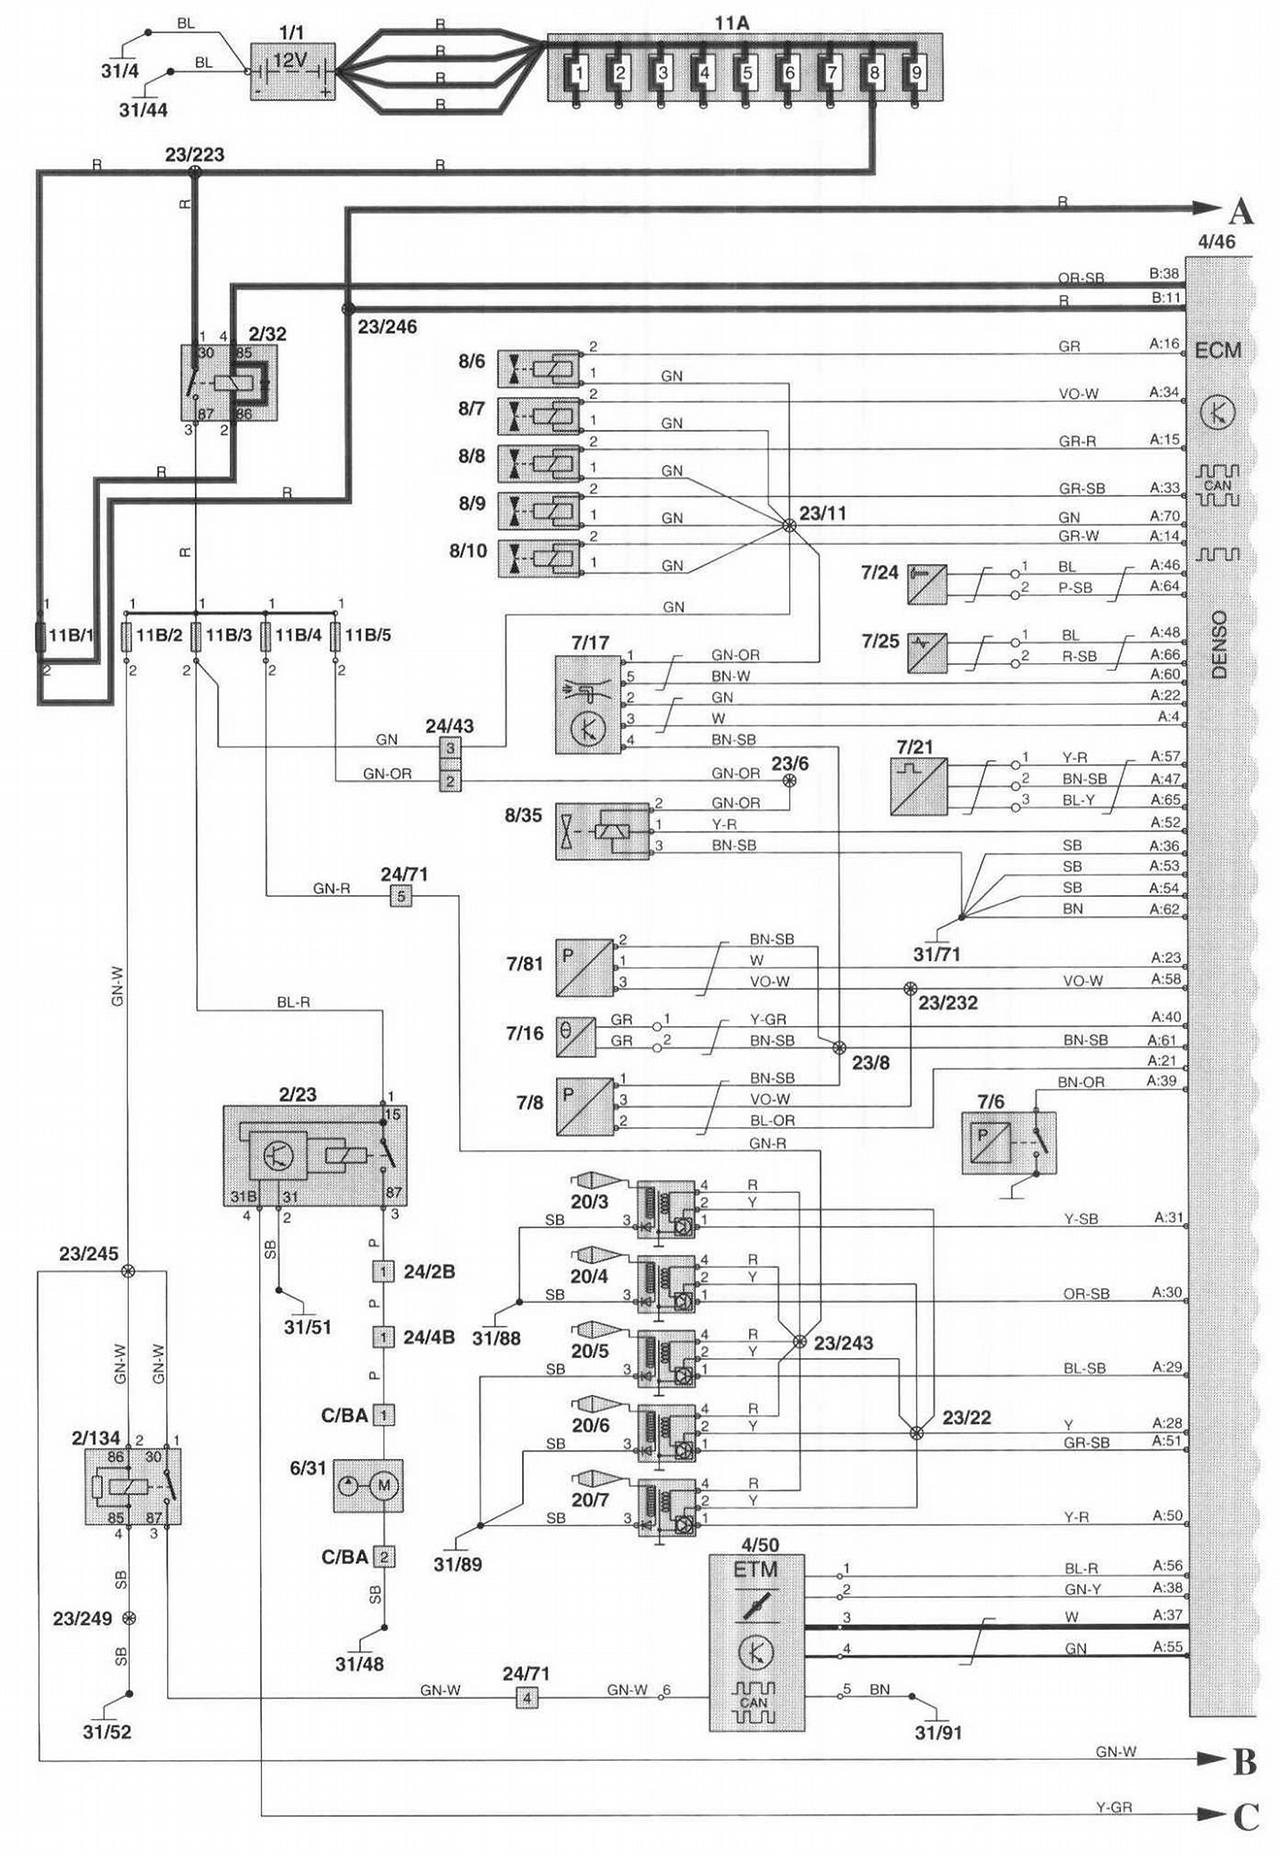 Volvo Amazon Alternator Wiring Diagram Schematics Diagrams Penta Vnl Ford F800 Fuel Pump Relay 1993